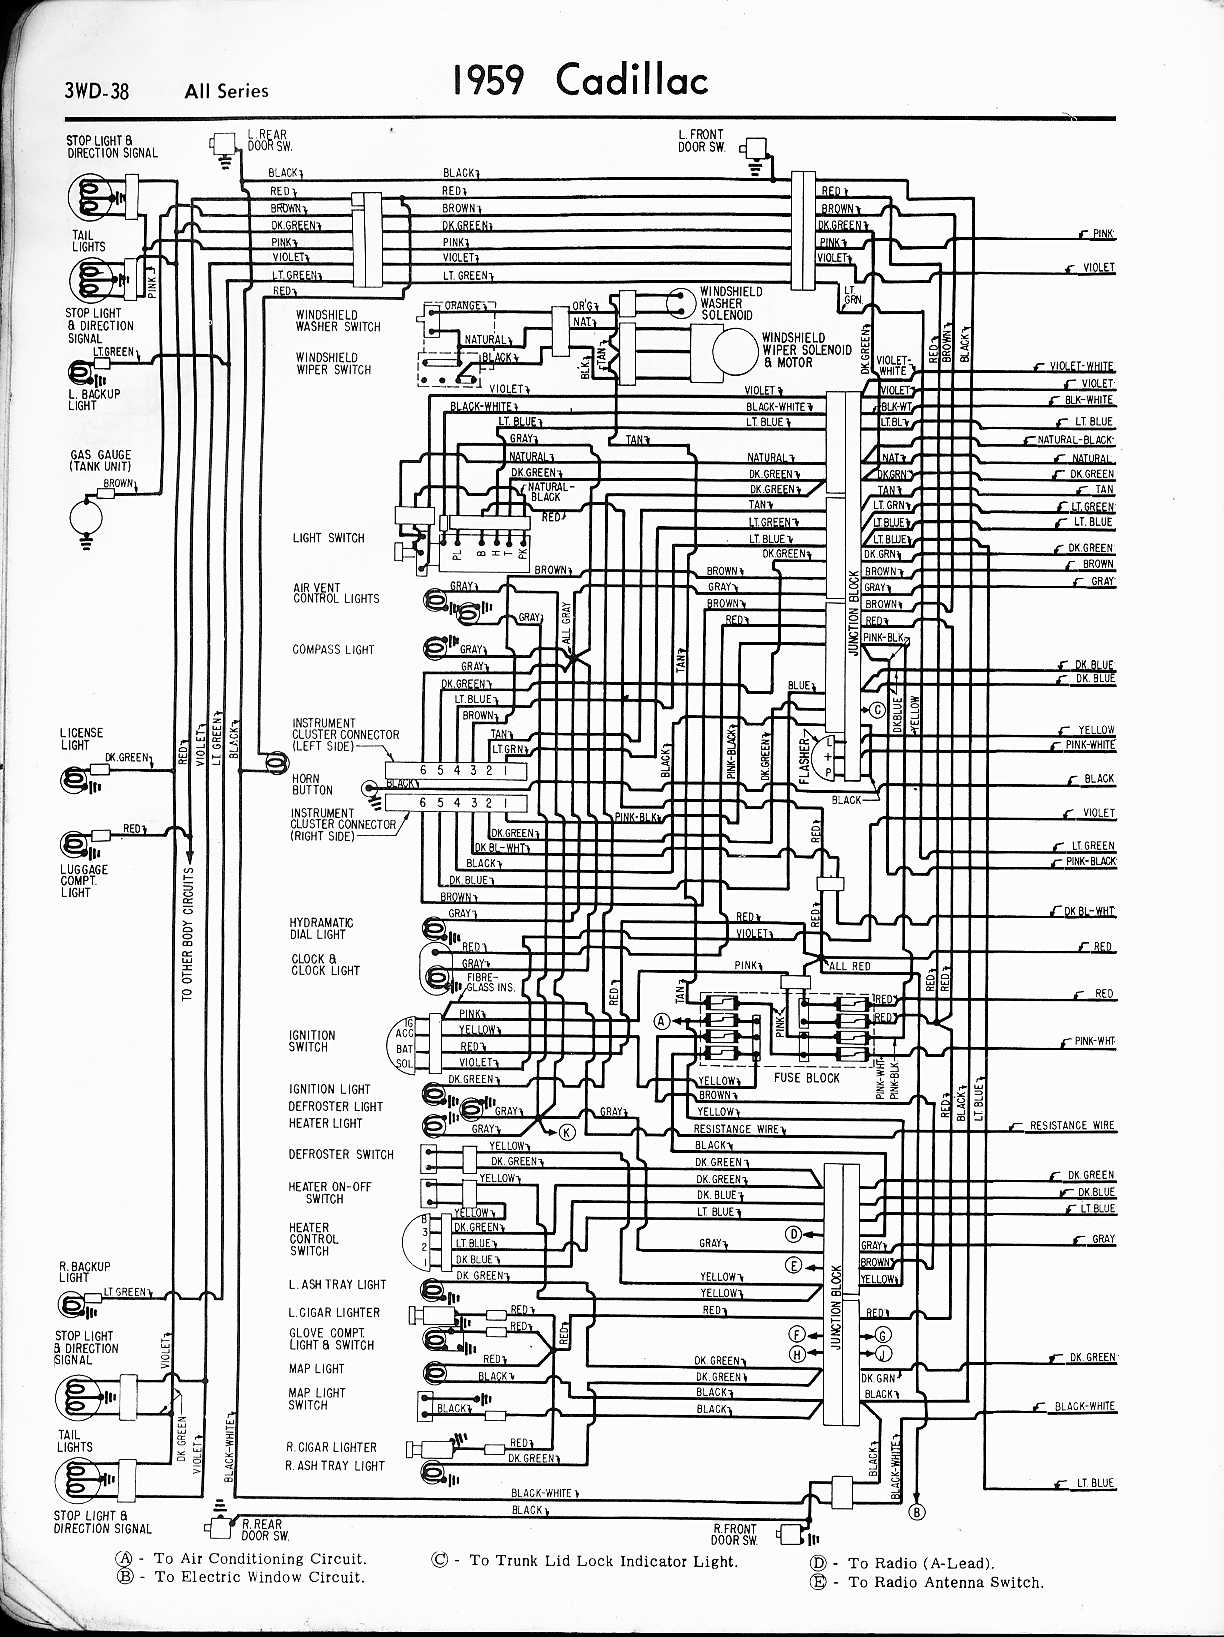 2004 Chrysler Pacifica Wiring Schematic | Free Wiring Diagram